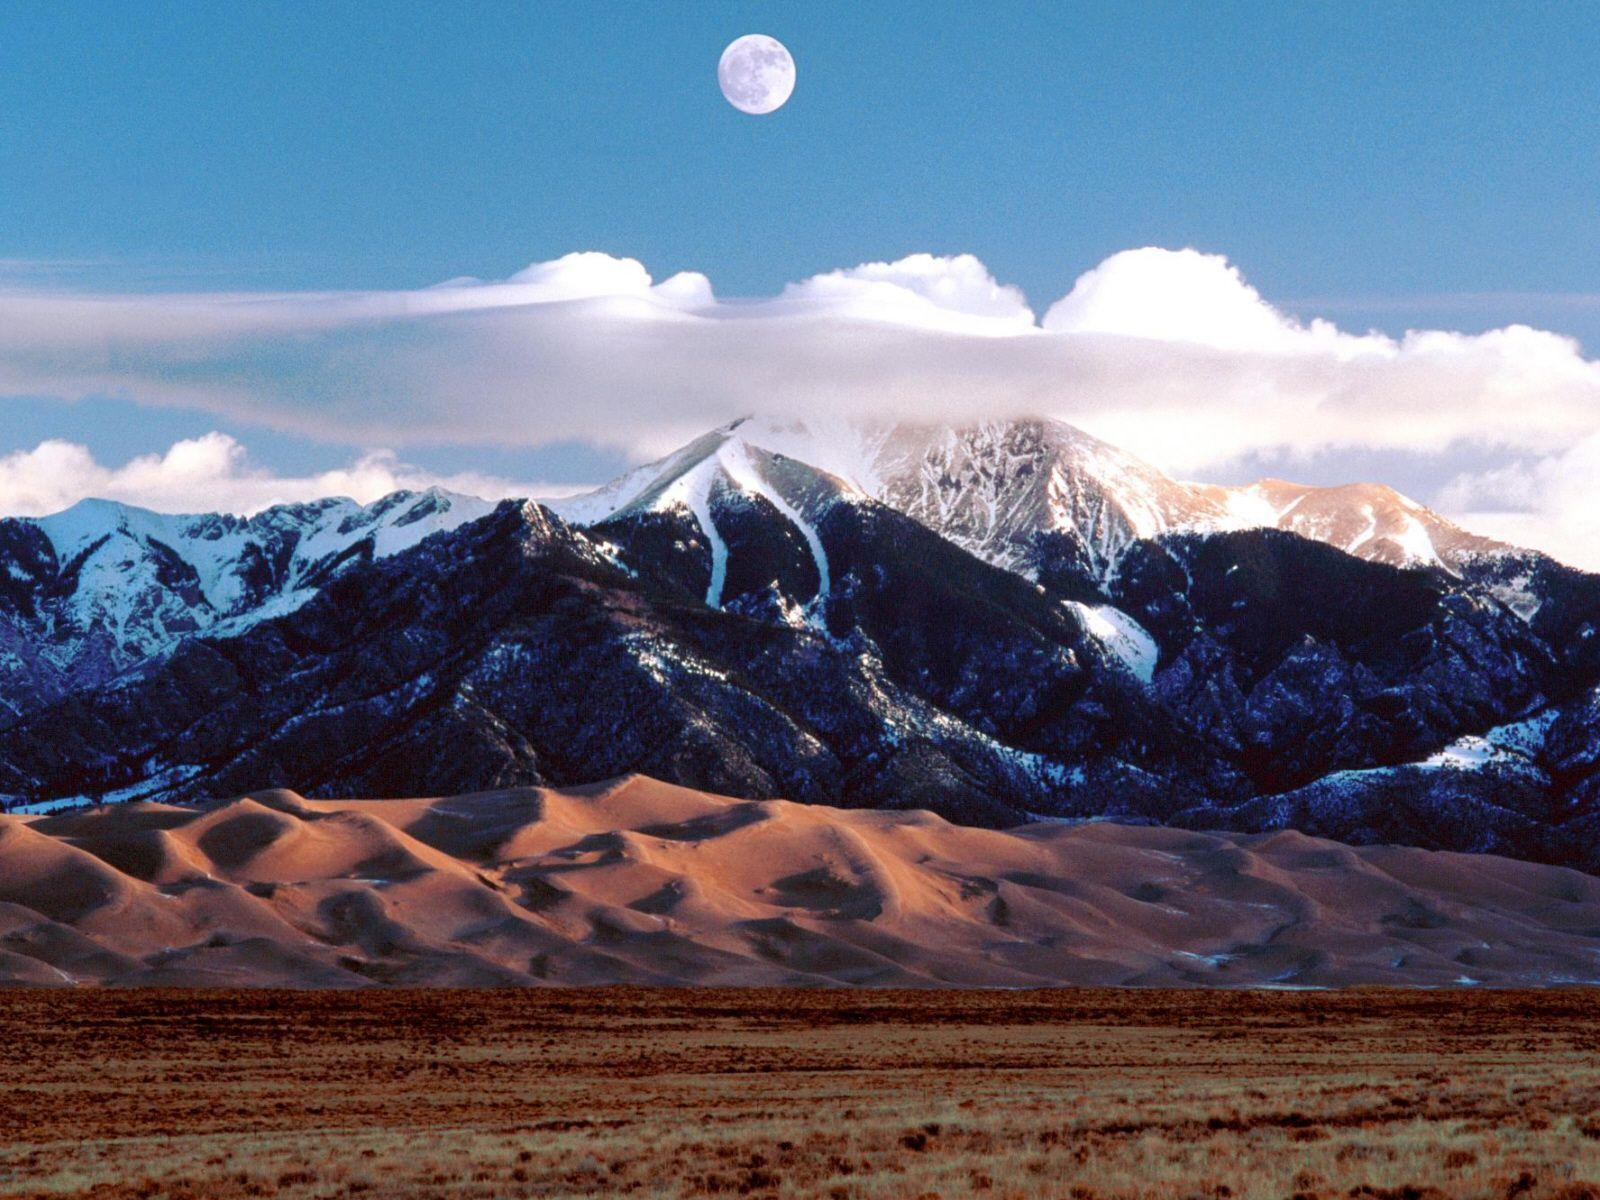 Nature: The Great Sand Dunes National Park & Preserve Colorado